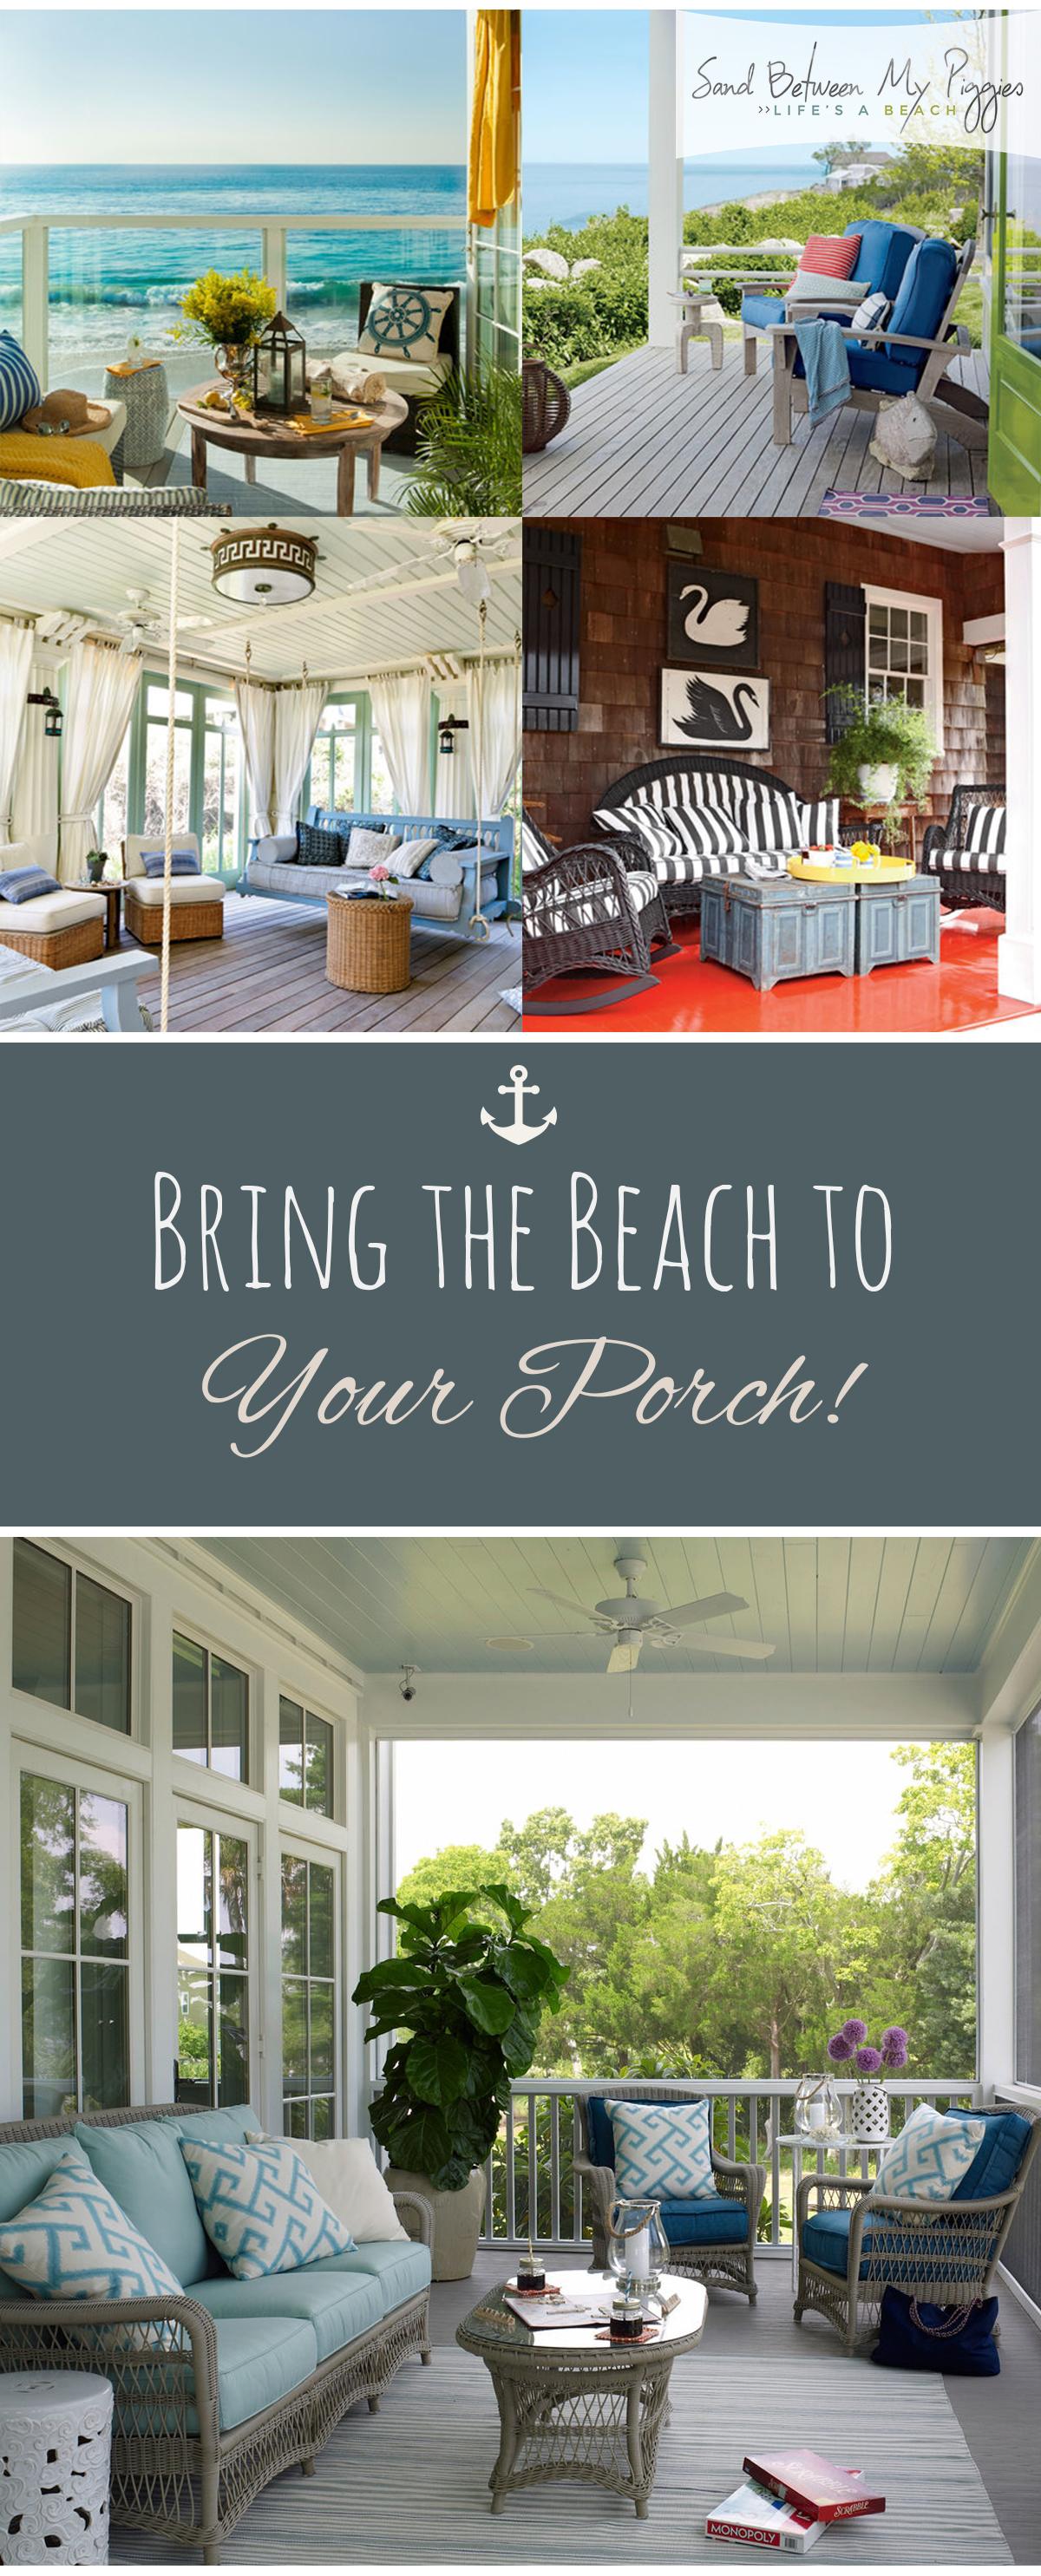 Bring the Beach to Your Porch! Porch Decor, Beach Themed Porch Decor, DIY Porch, How to Decorate Your Porch, Decorating Your Porch, DIY Home, Coastal Home, Coastal Home Decor, Coastal Porch Decor